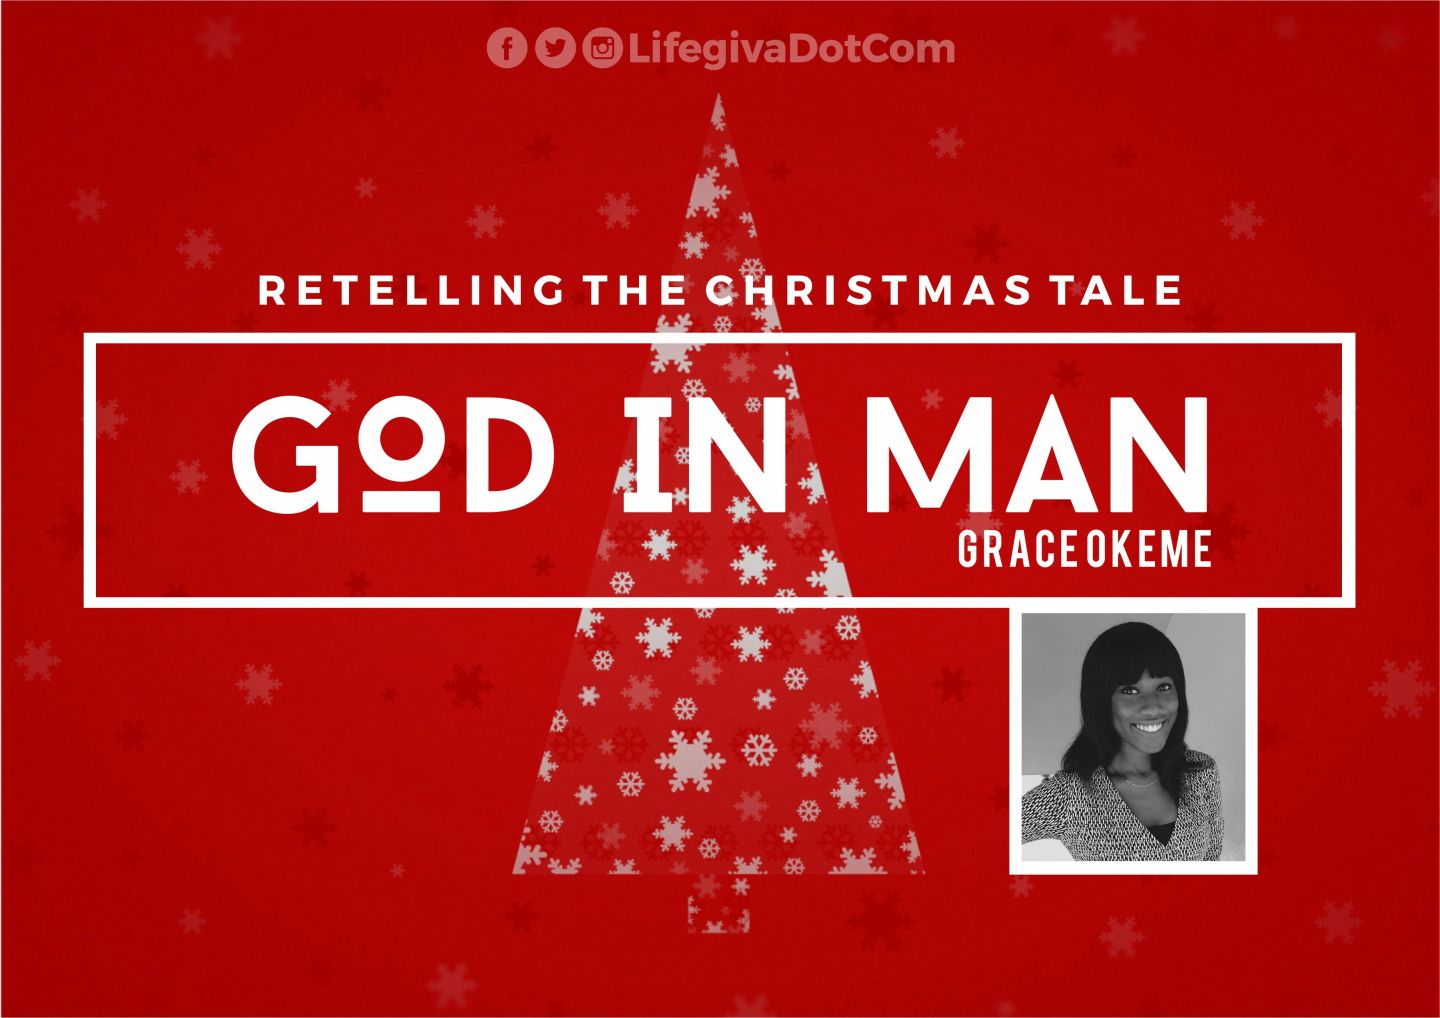 GOD IN MAN - Grace Okeme